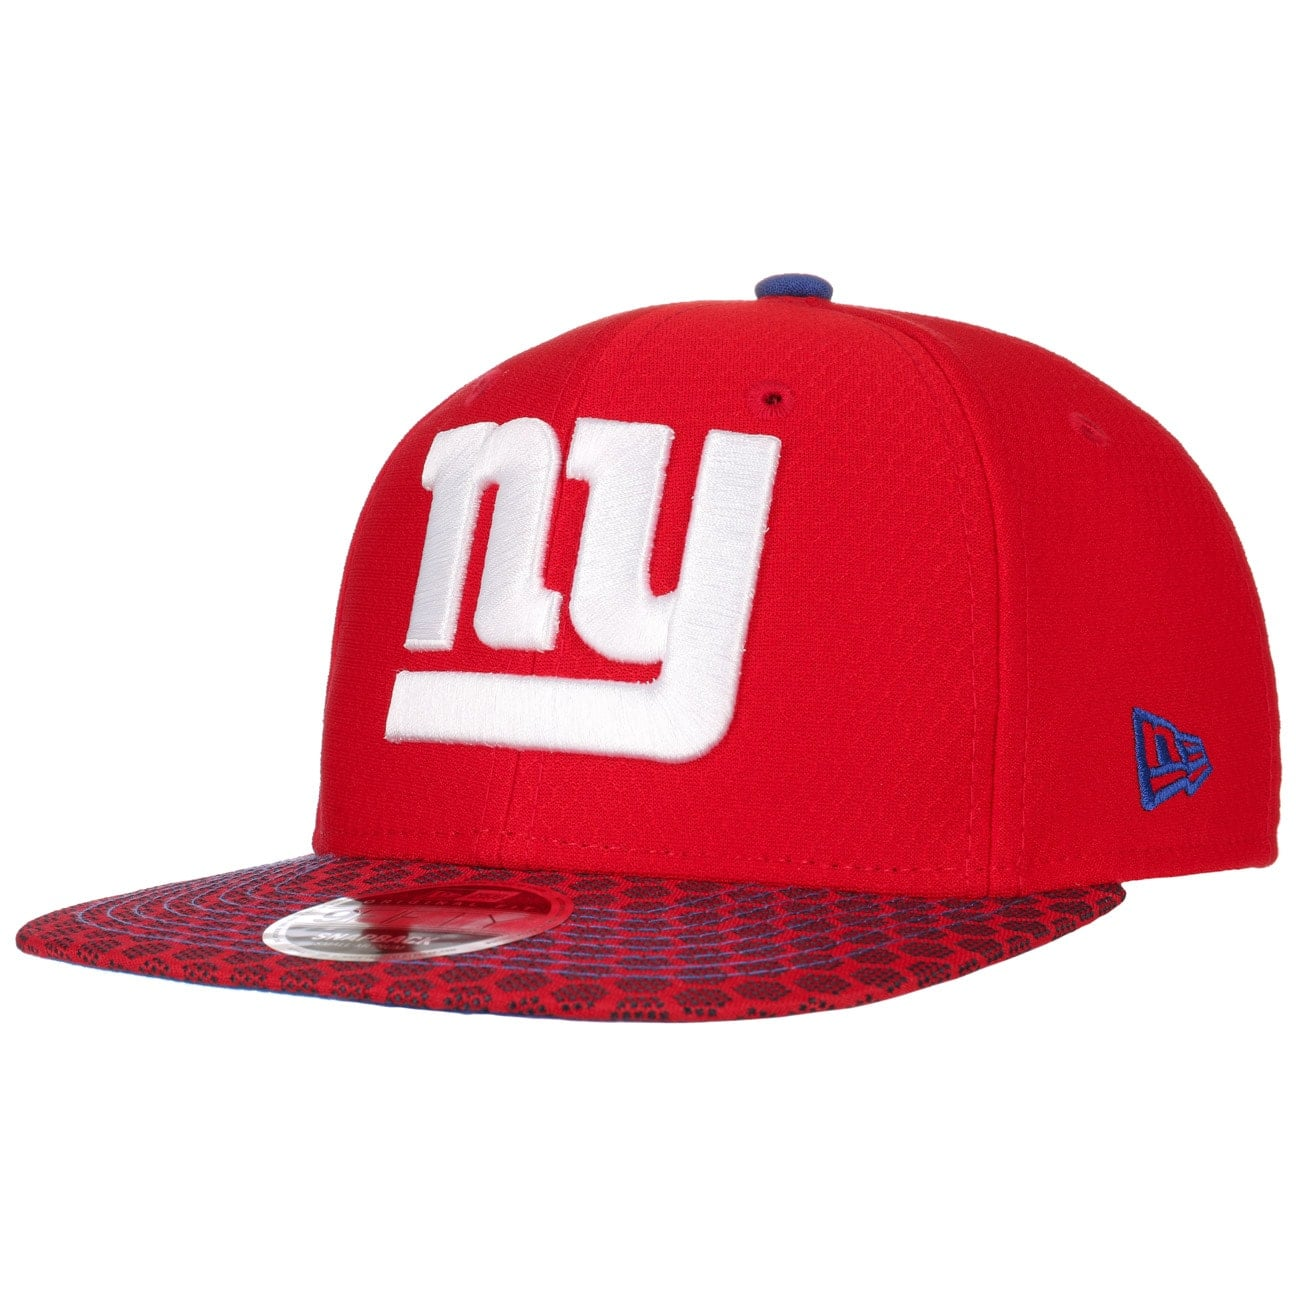 gorra-9fifty-onf-giants-by-new-era